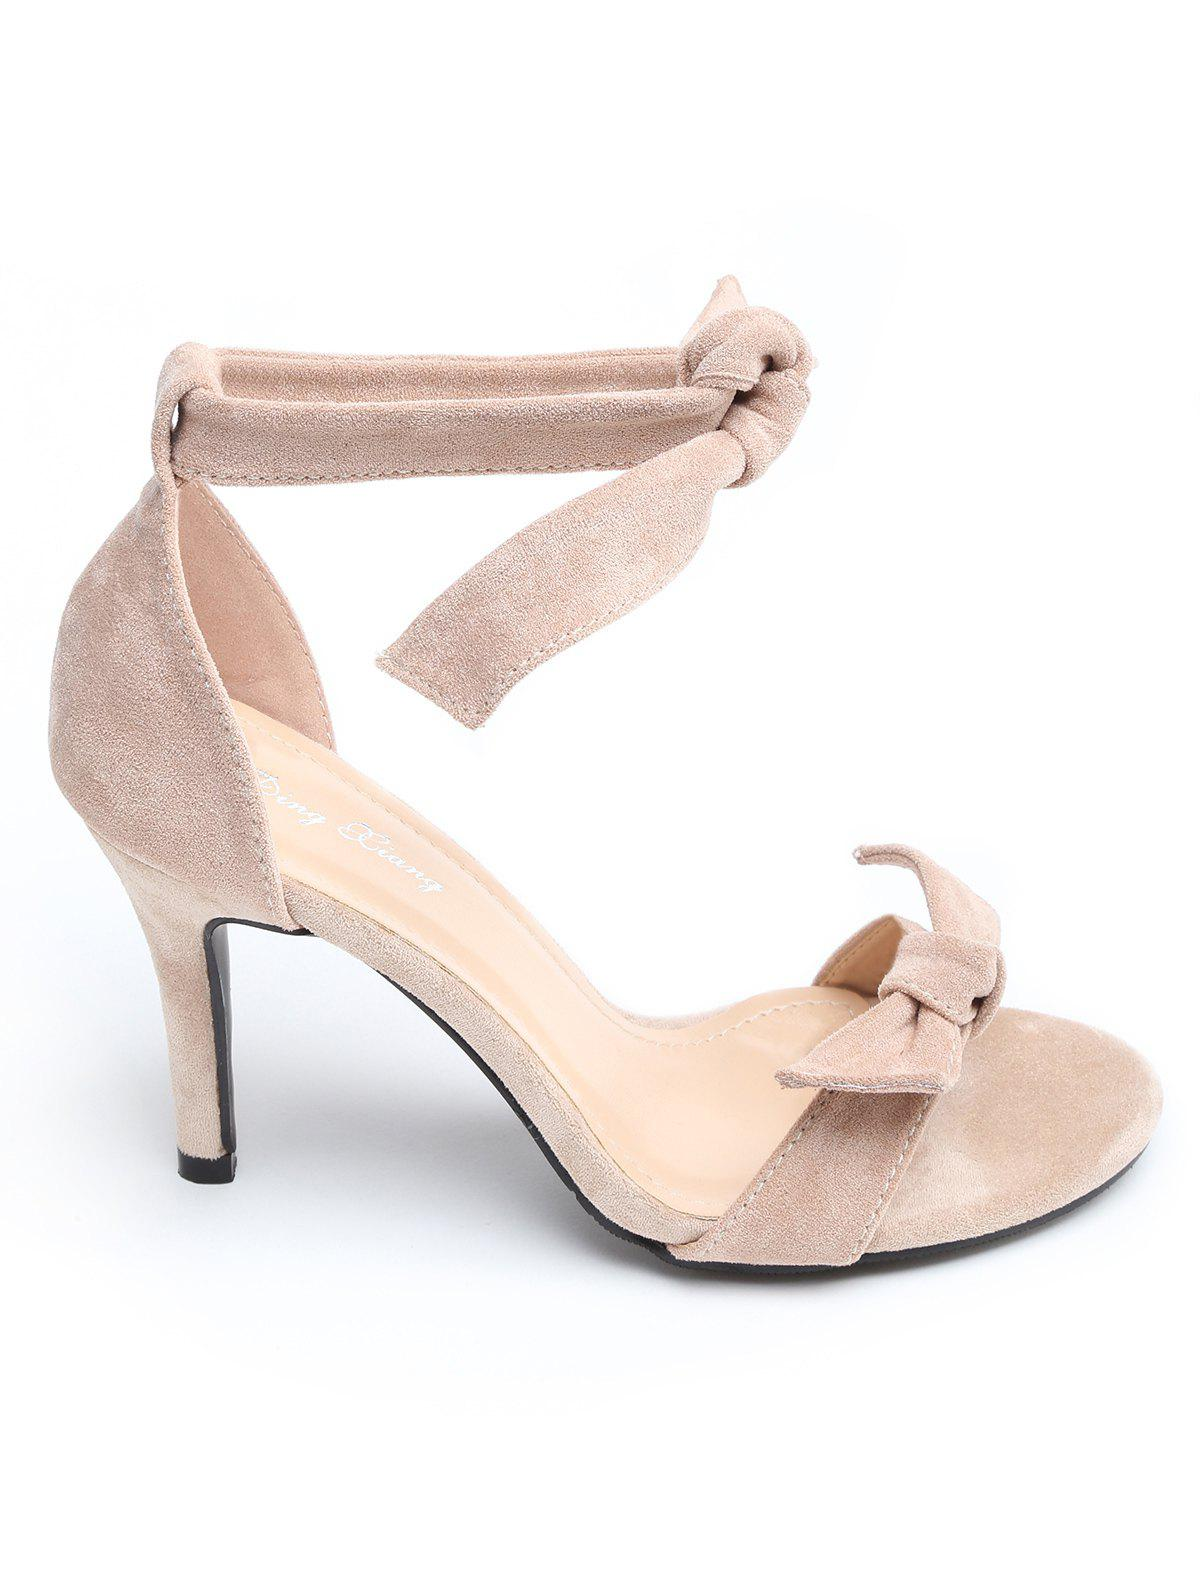 Ankle Strap Suede Bow Stiletto Heel Sandals - PINK BUBBLEGUM 36